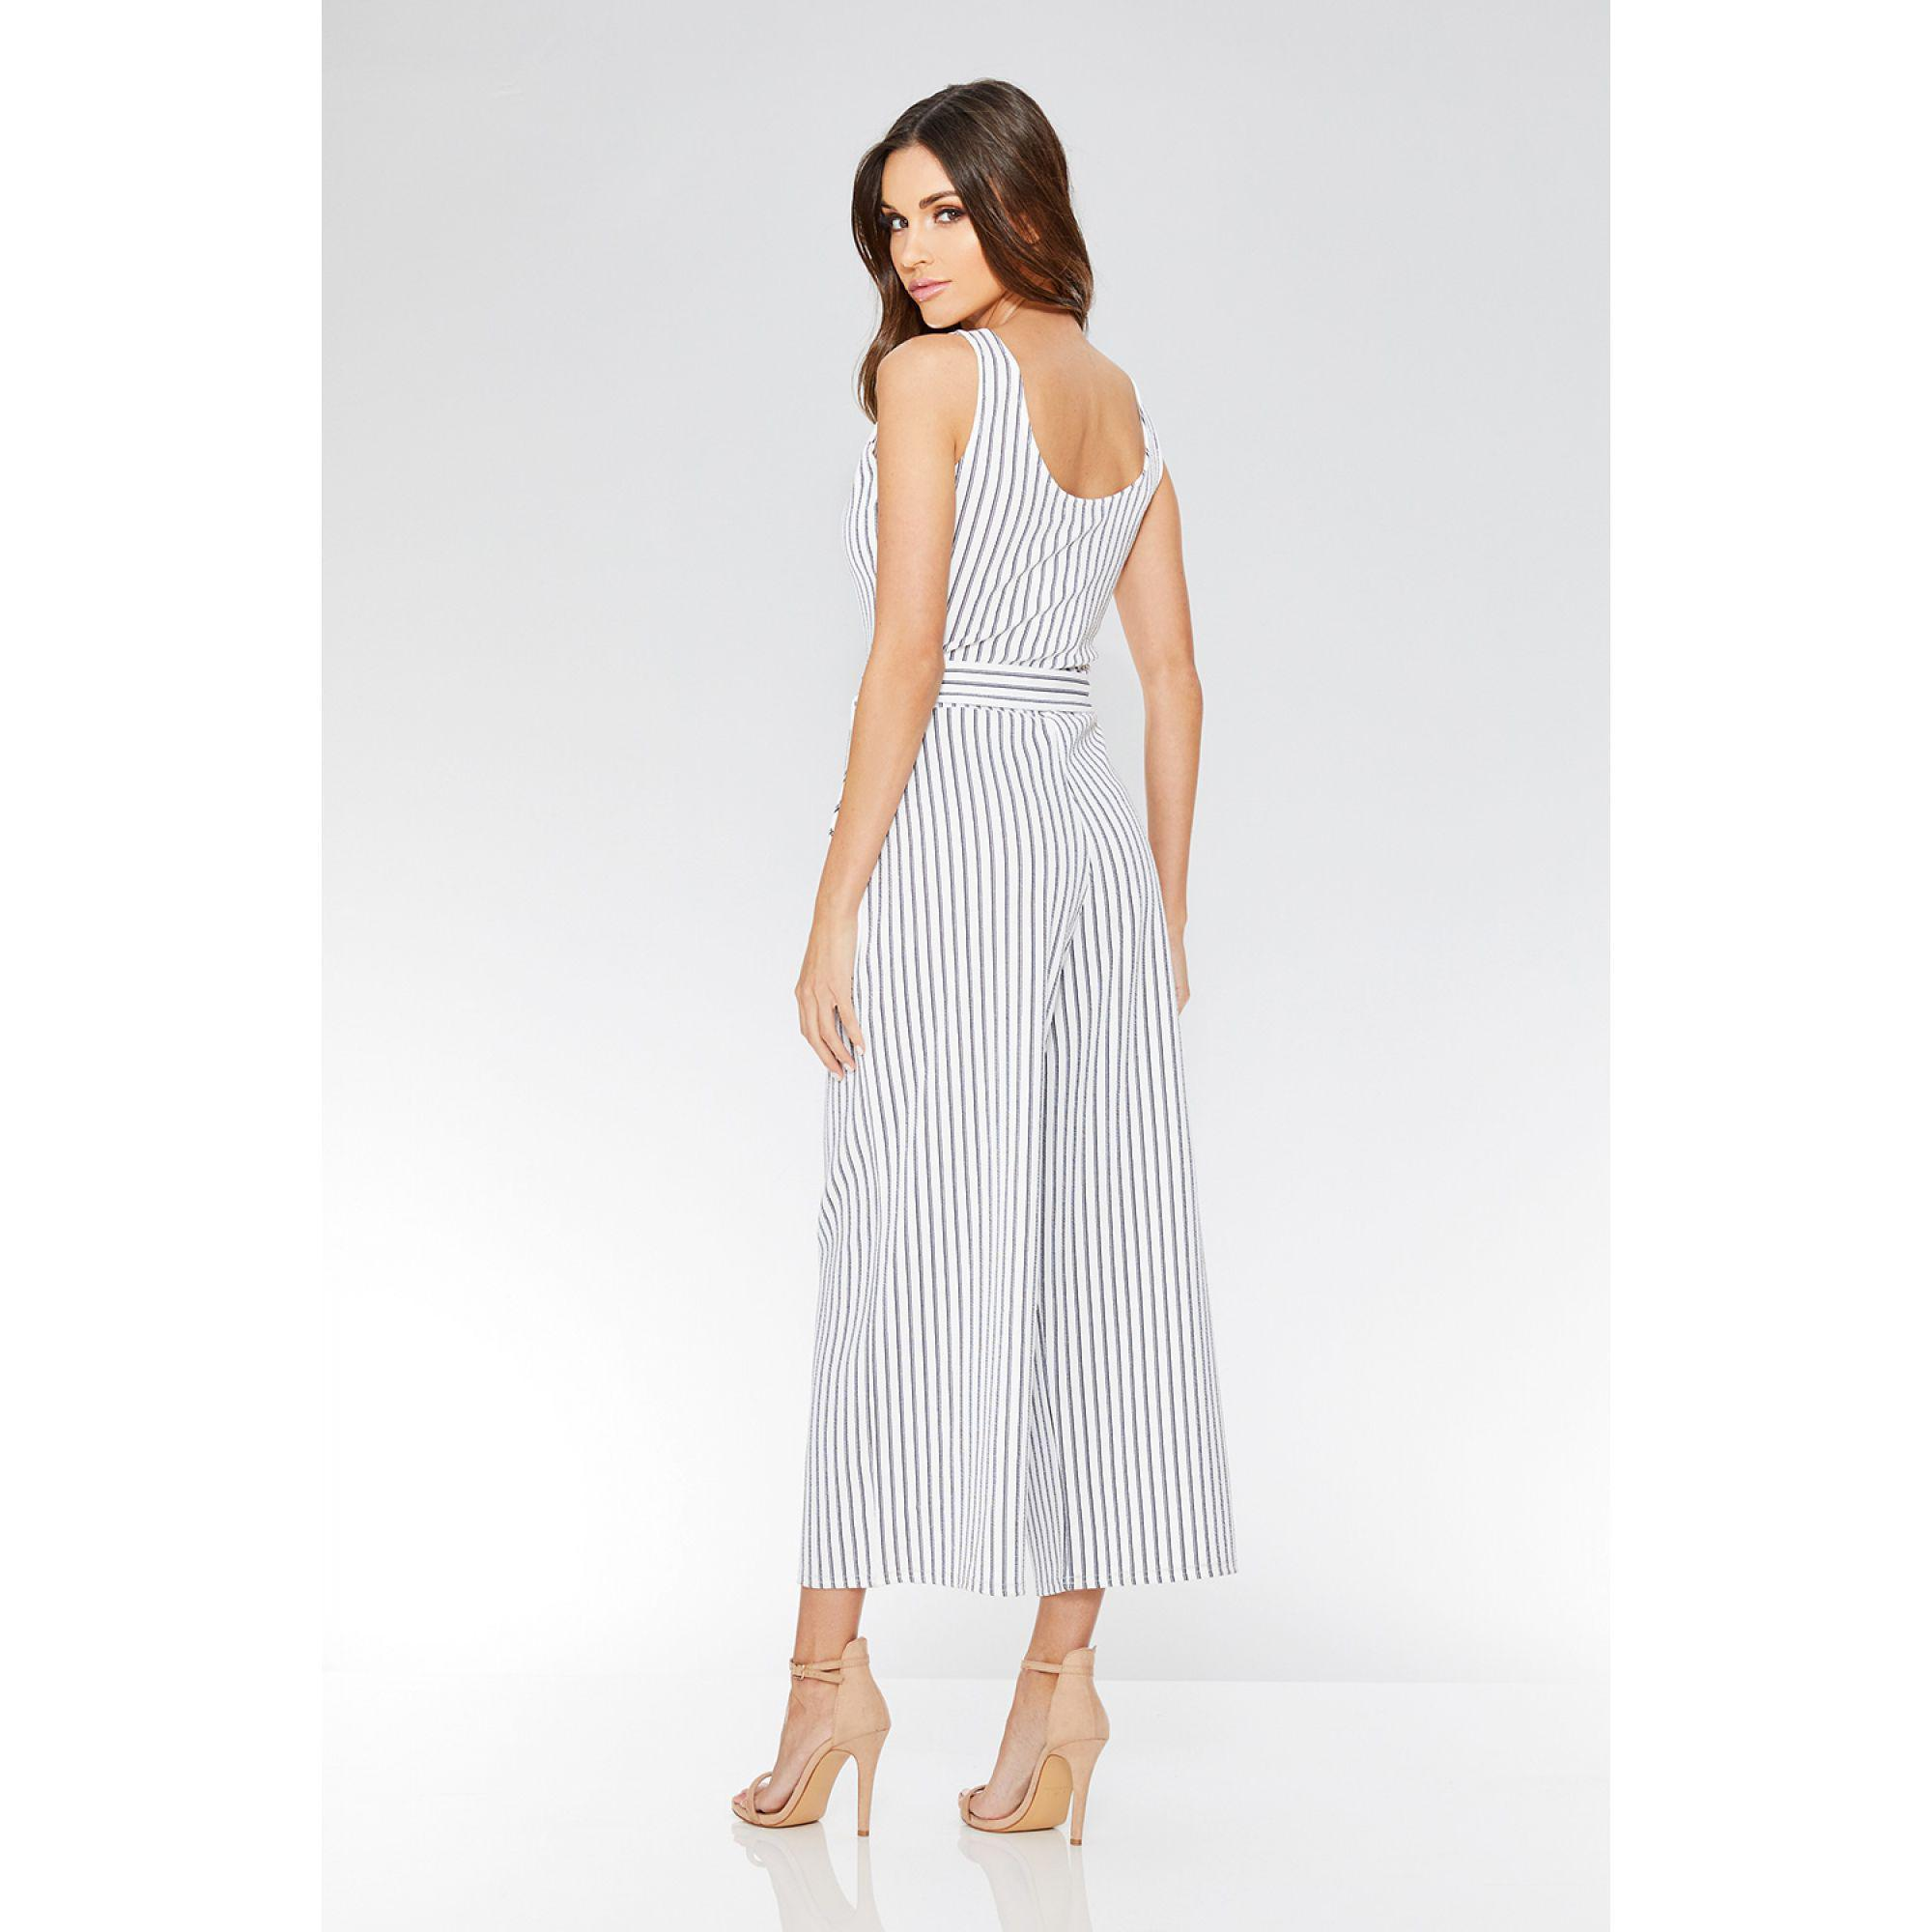 b80e3168d69 Quiz - White And Navy Stripe Tie Belt Jumpsuit - Lyst. View fullscreen